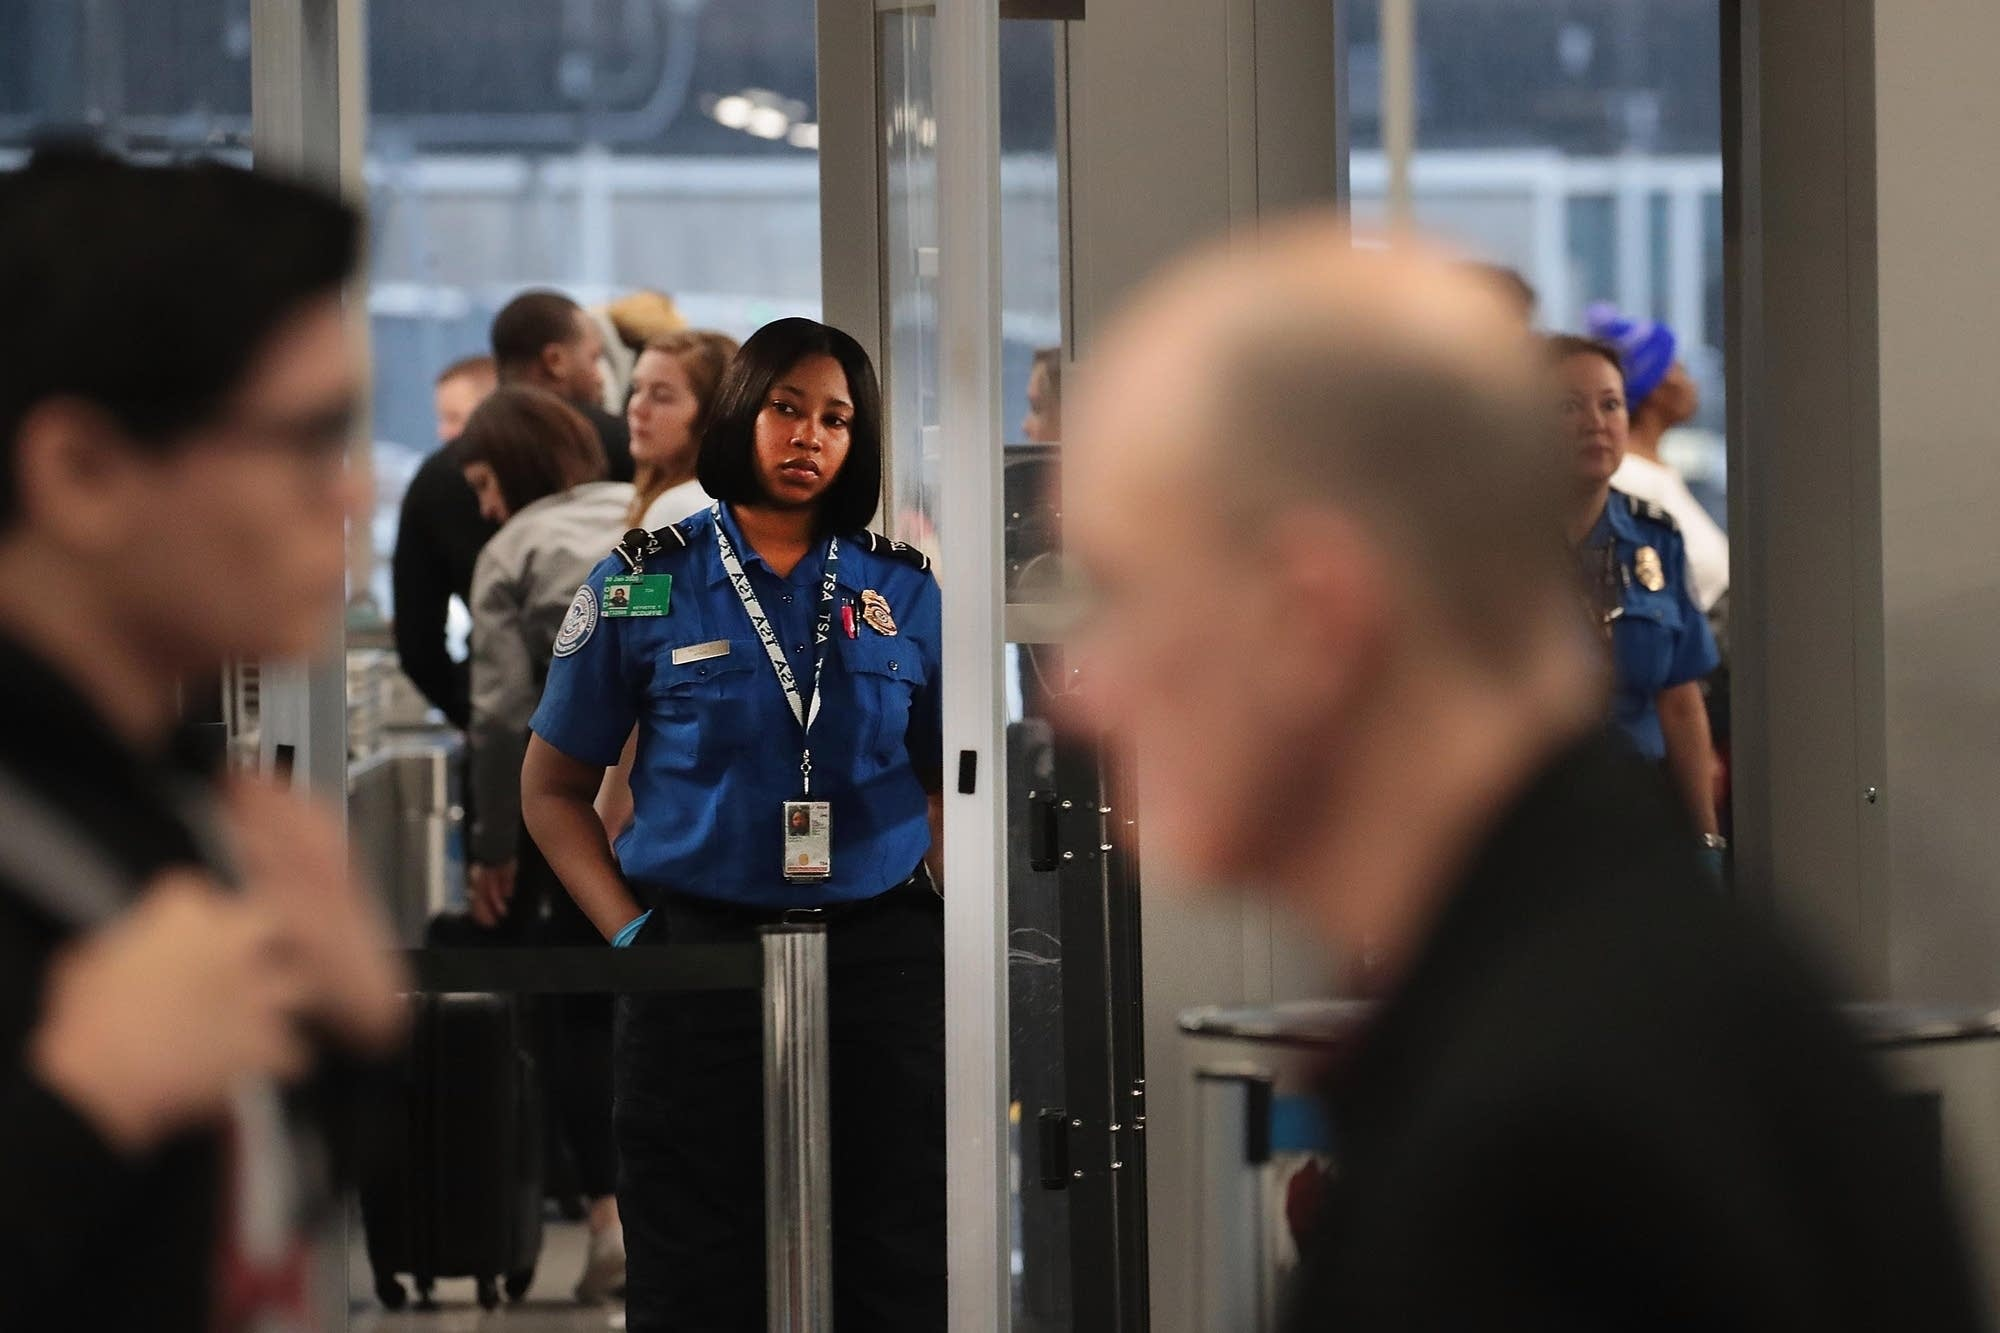 A TSA worker screens passengers and airport employees in Chicago.